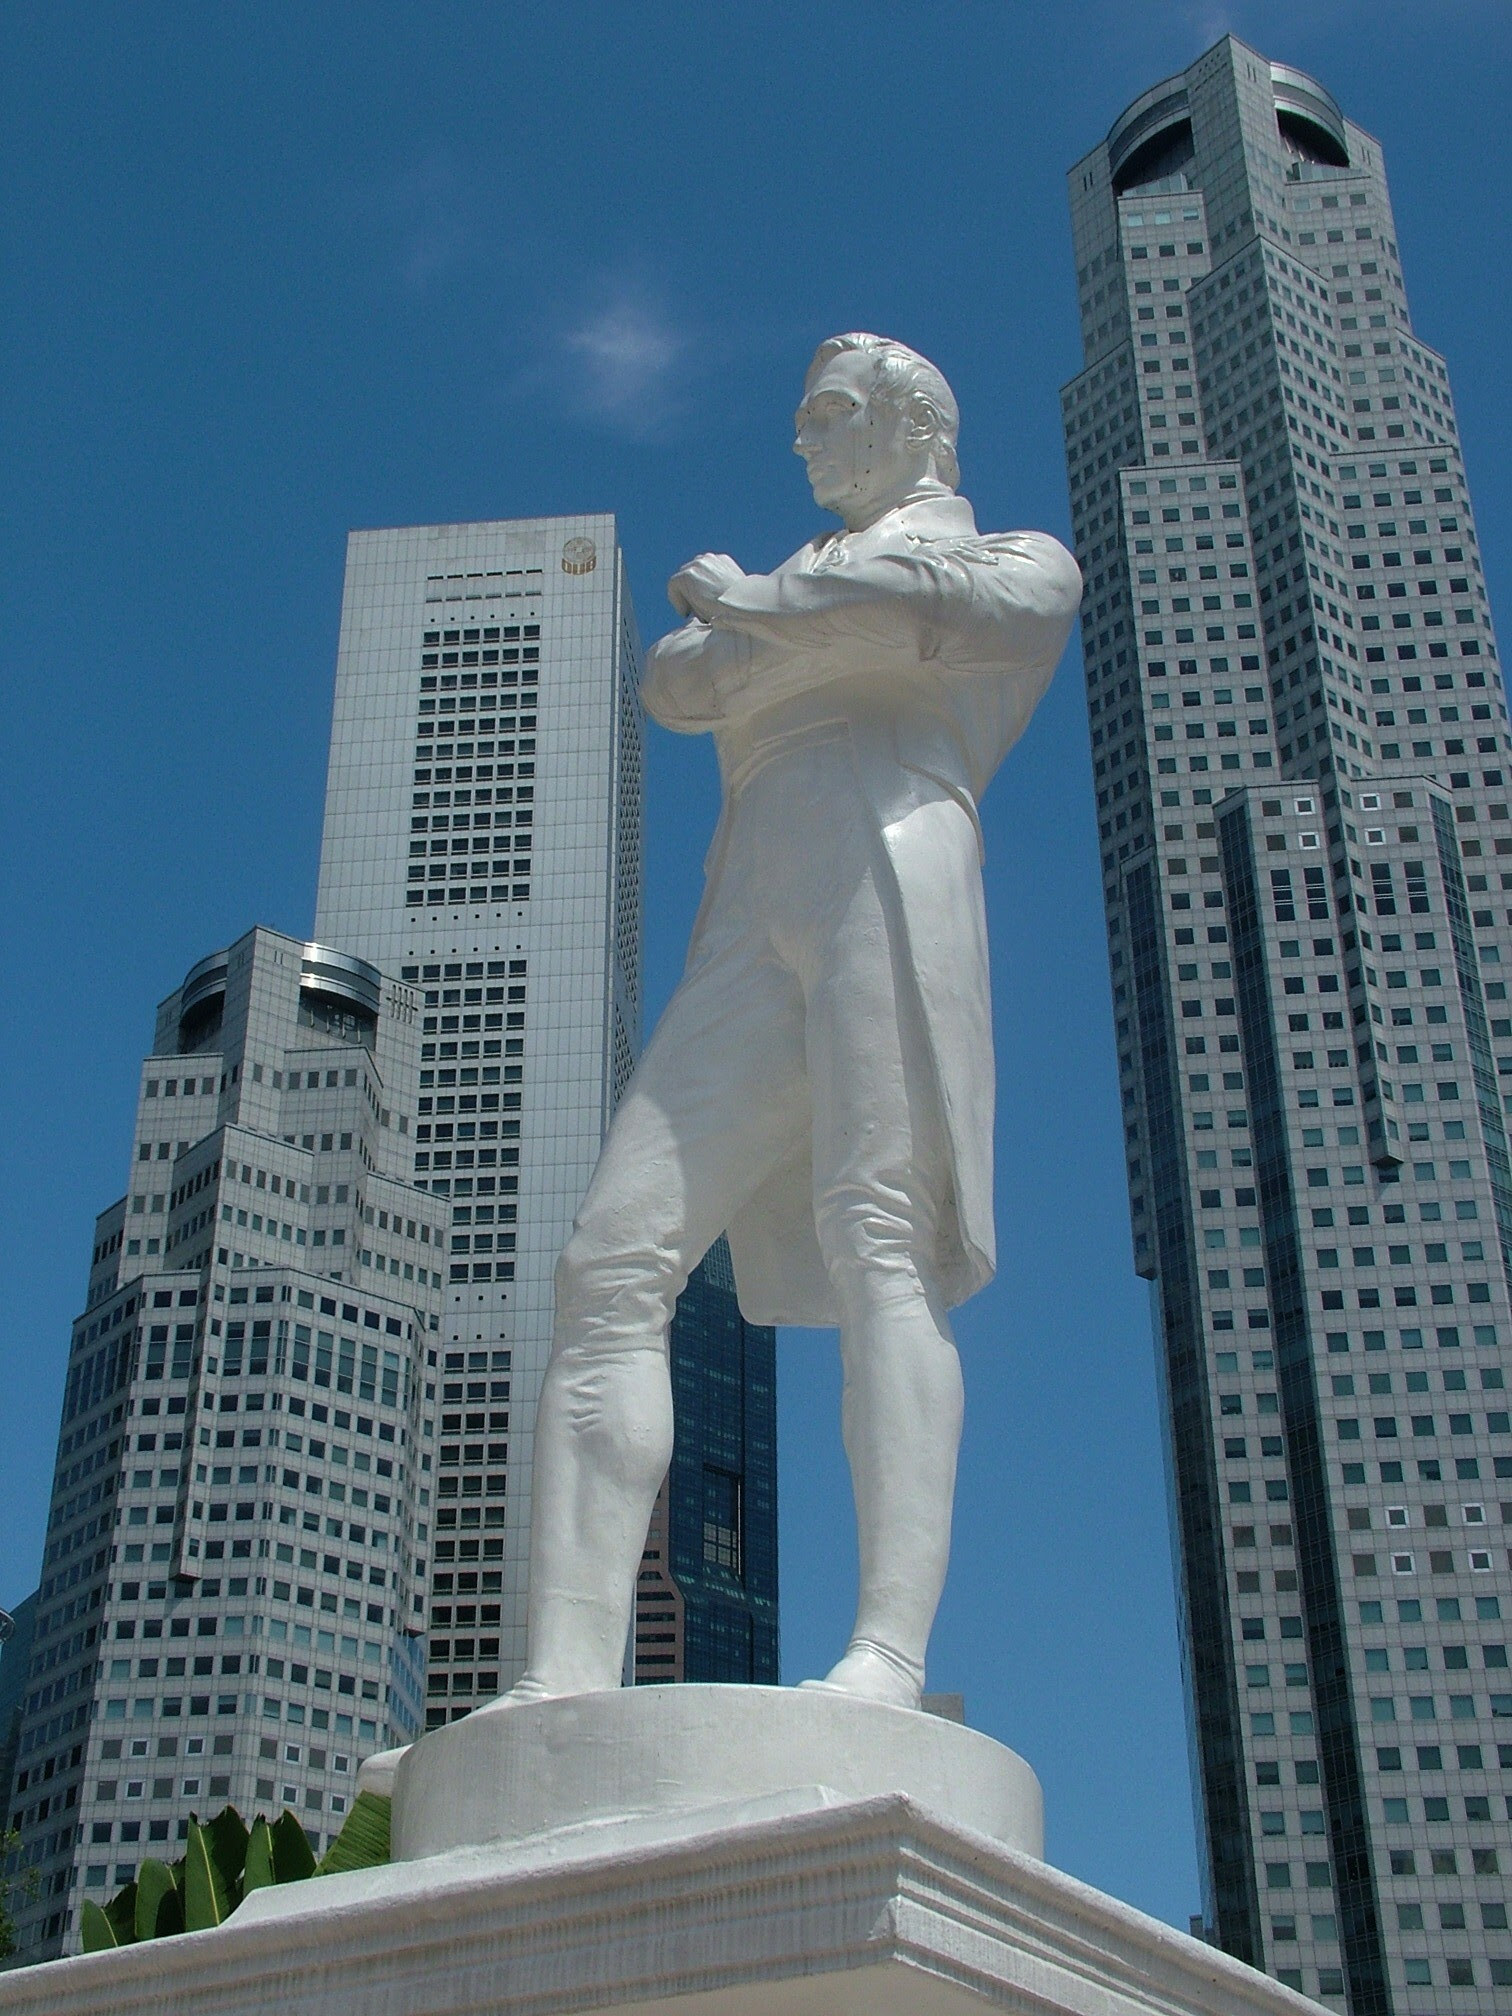 Statue of Raffles Singapore Location Map,Location Map of Statue of Raffles Singapore,Statue of Sir Stamford Raffles Singapore accommodation destinations attractions hotels map photos pictures, raffles landing site,black raffles statue,raffles landing place,raffles landing site map